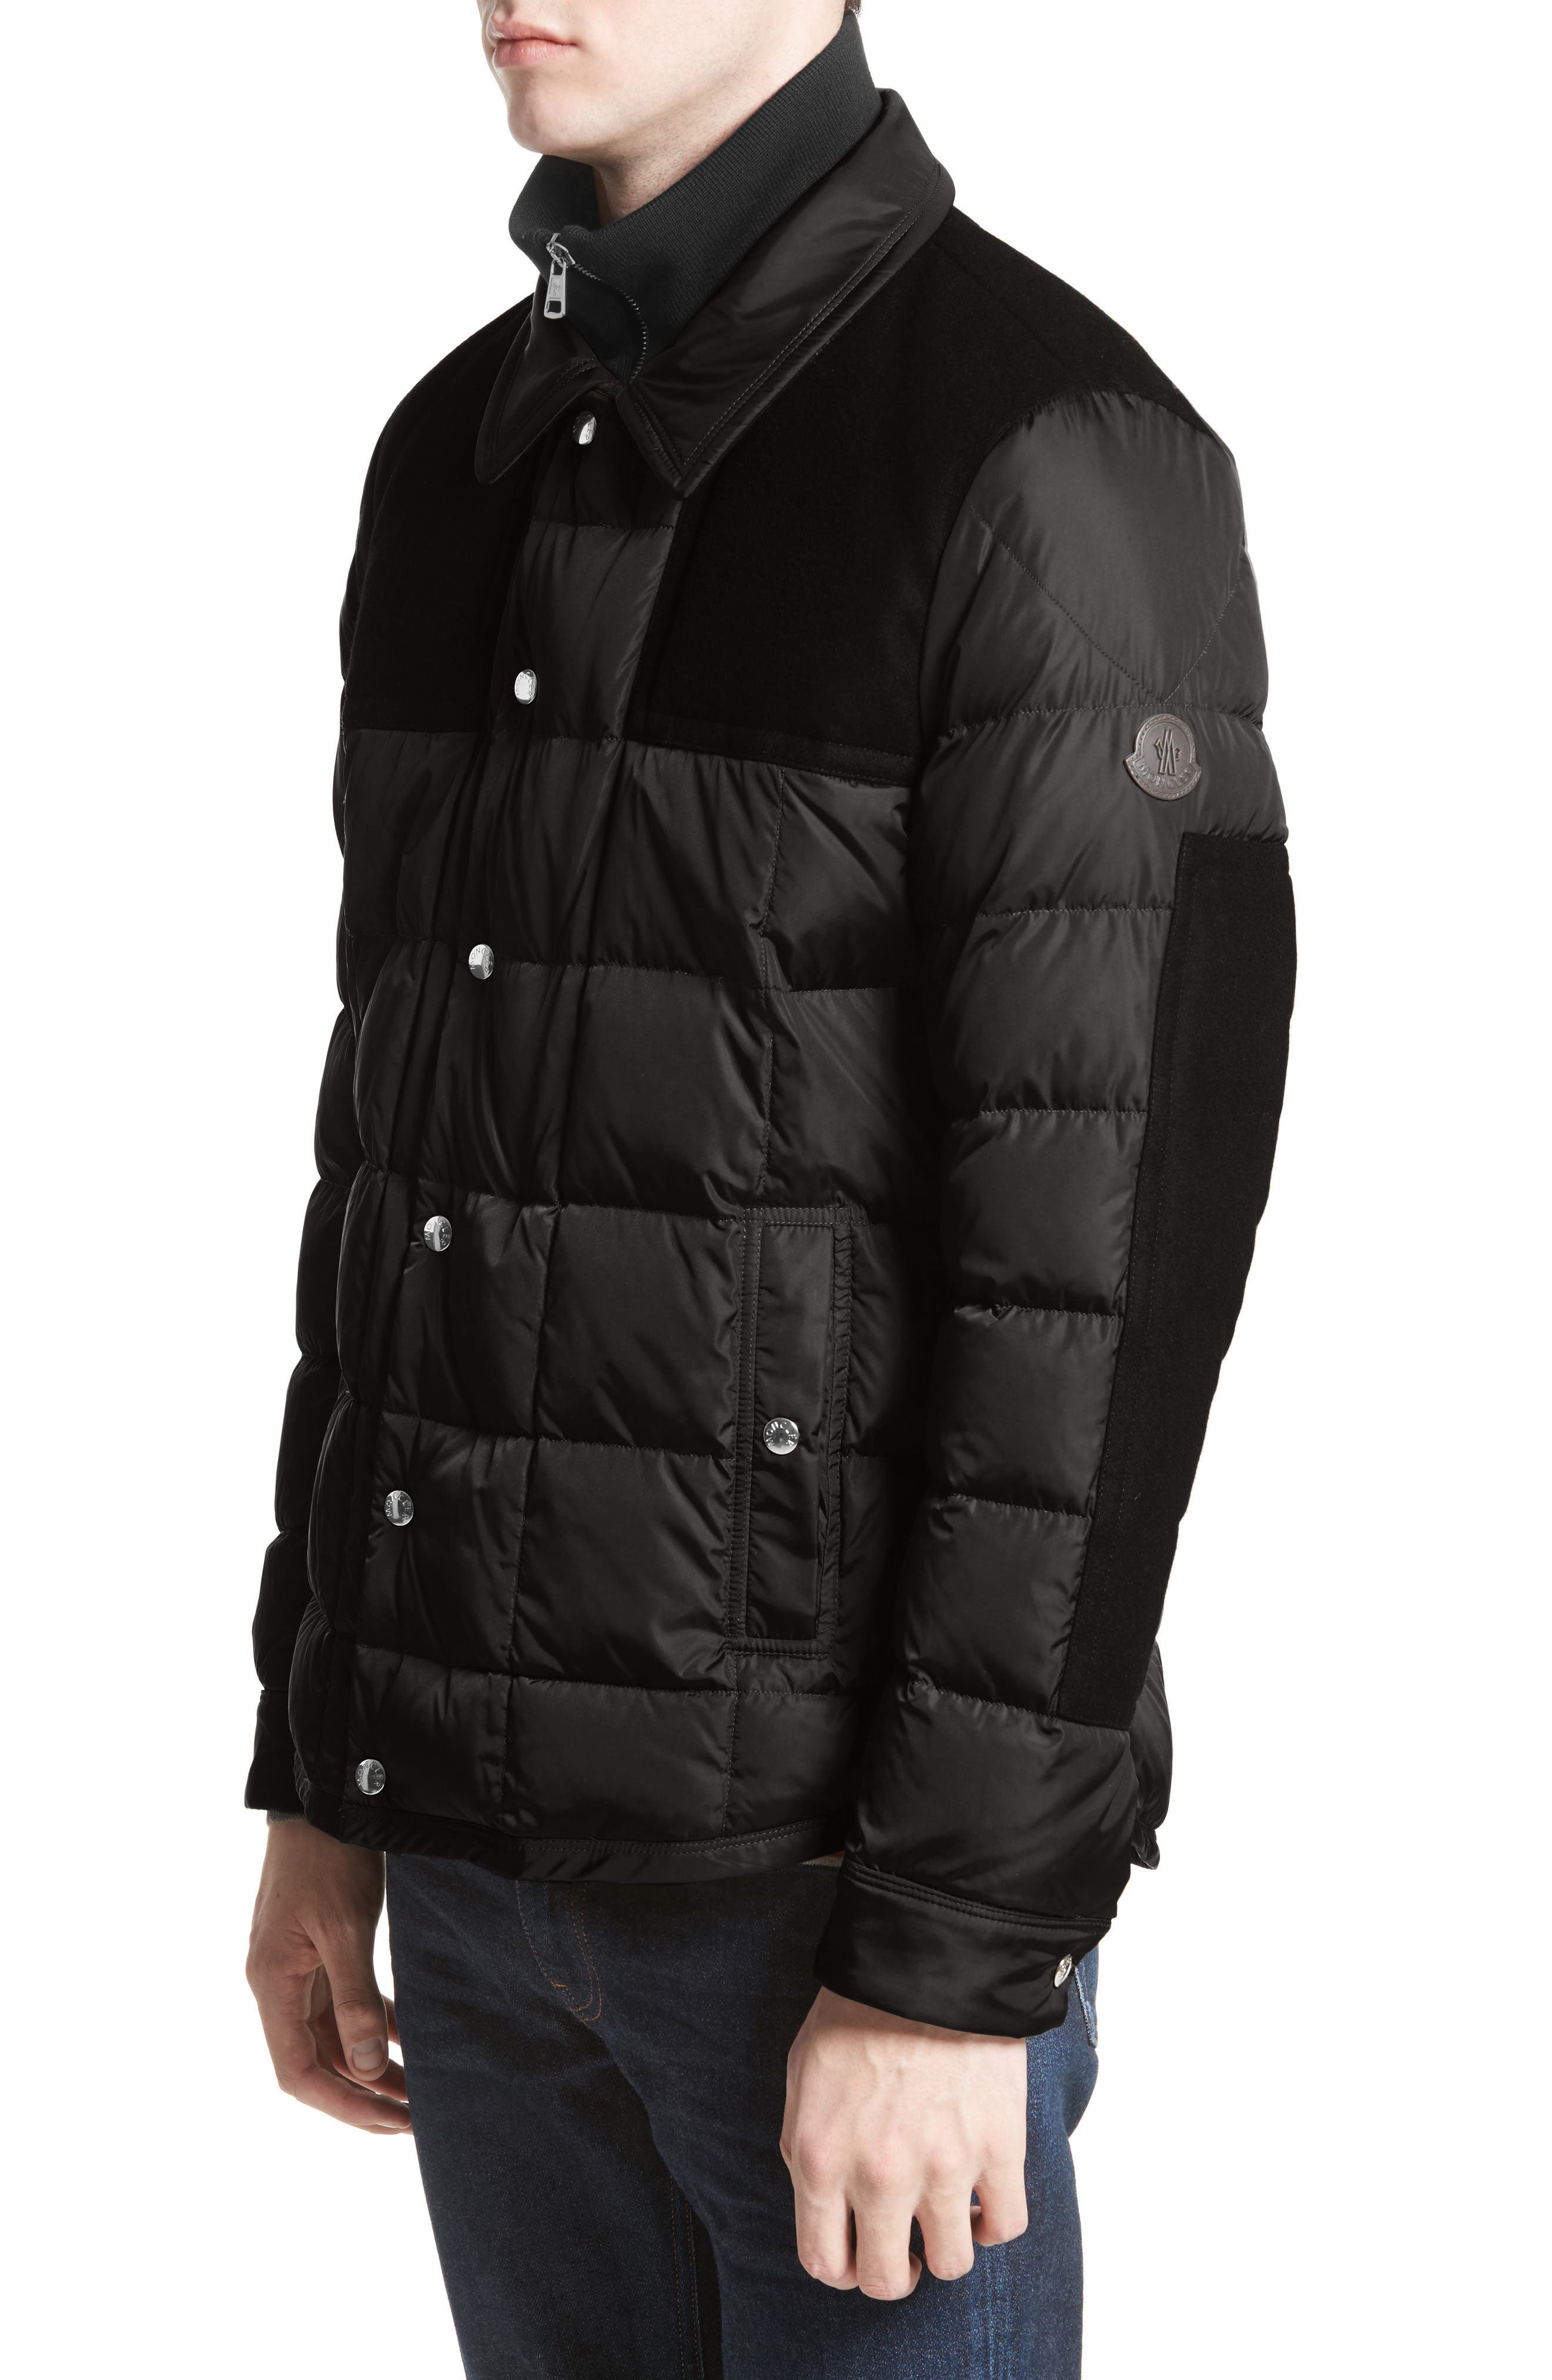 Clovis Mixed Media Quilted Down Jacket,                             Main thumbnail 1, color,                             001